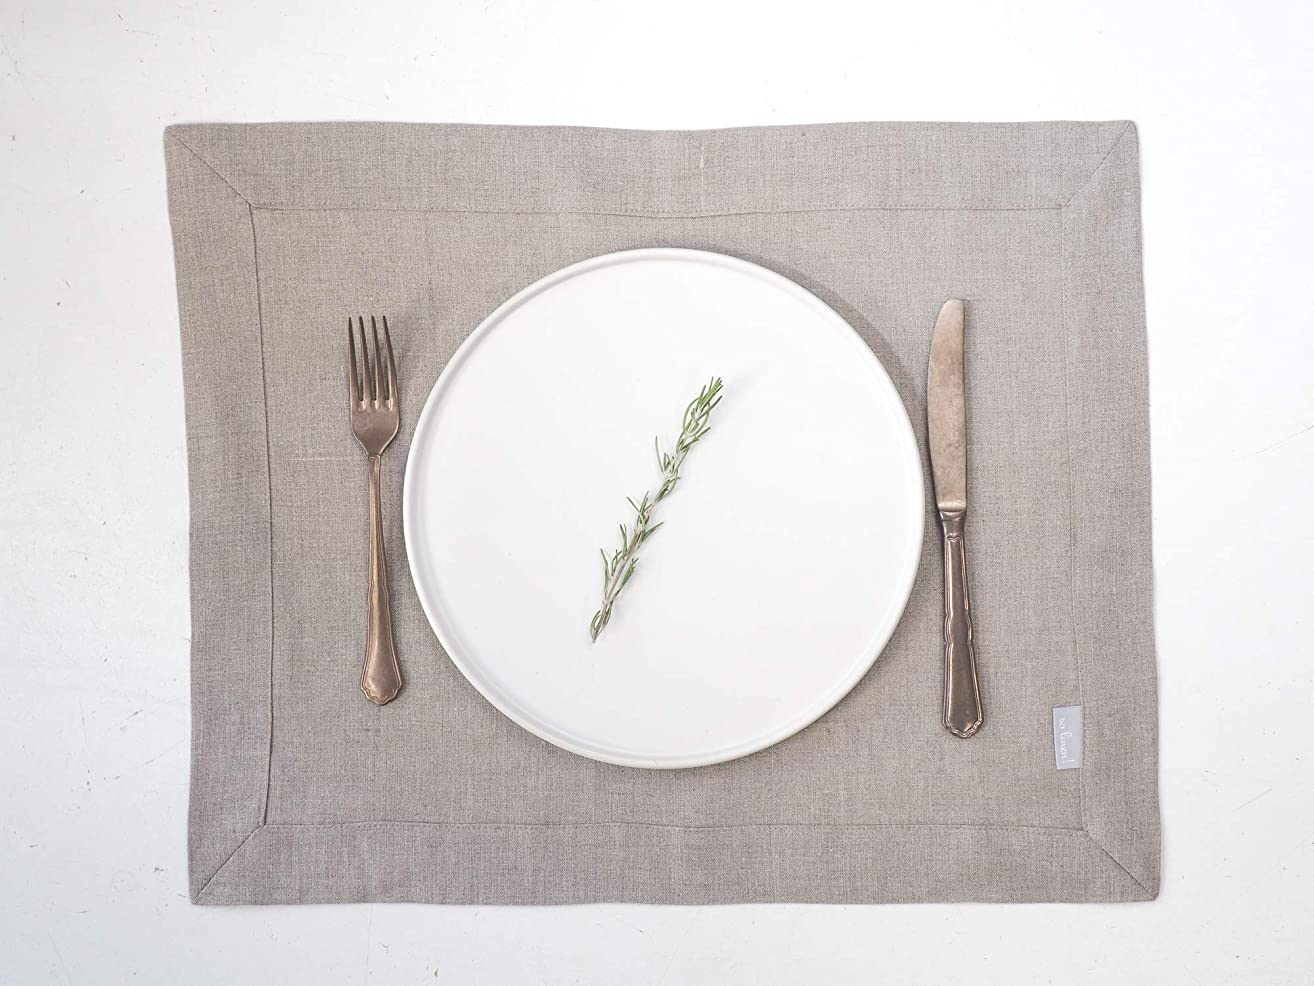 Linen Placemats SET of 2, Fabric Placemats, Natural linen Placemats, Cloth Placemats, Table Placemats, Table Linens, Custom placemats, table linens